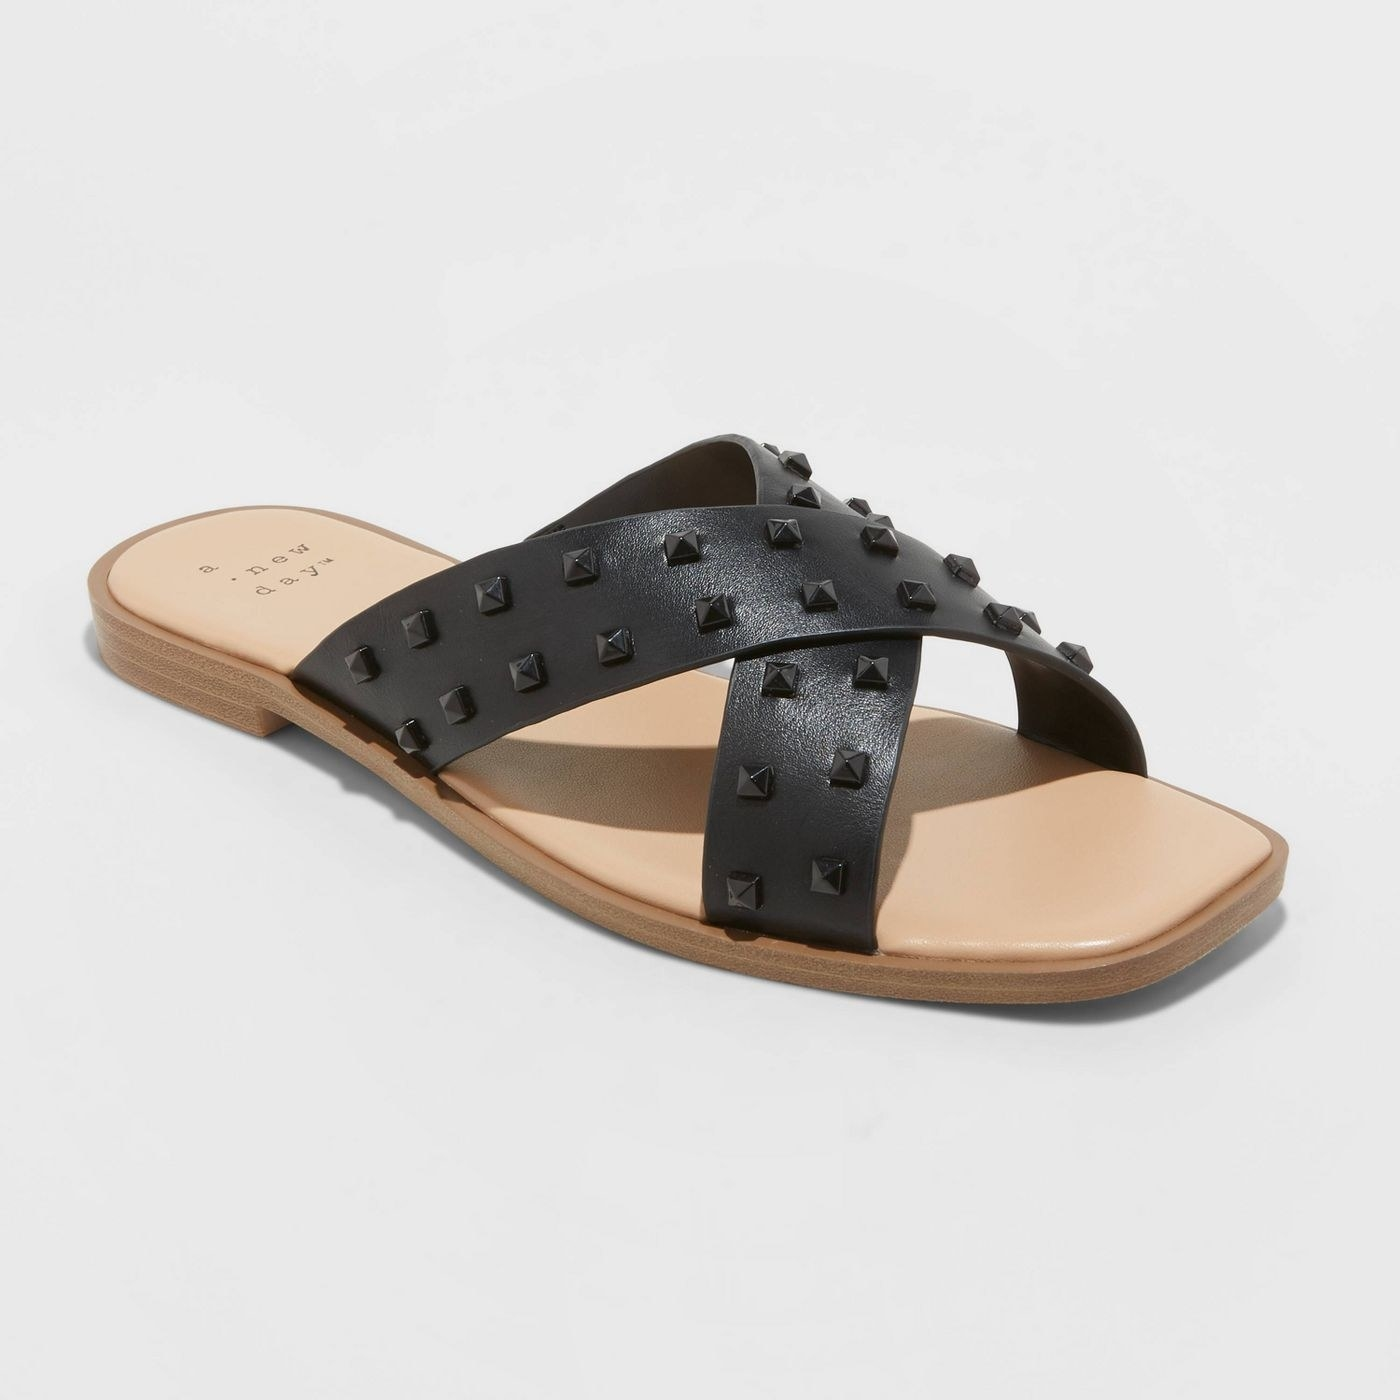 Sandals with black cross over leather with studs and tan sole